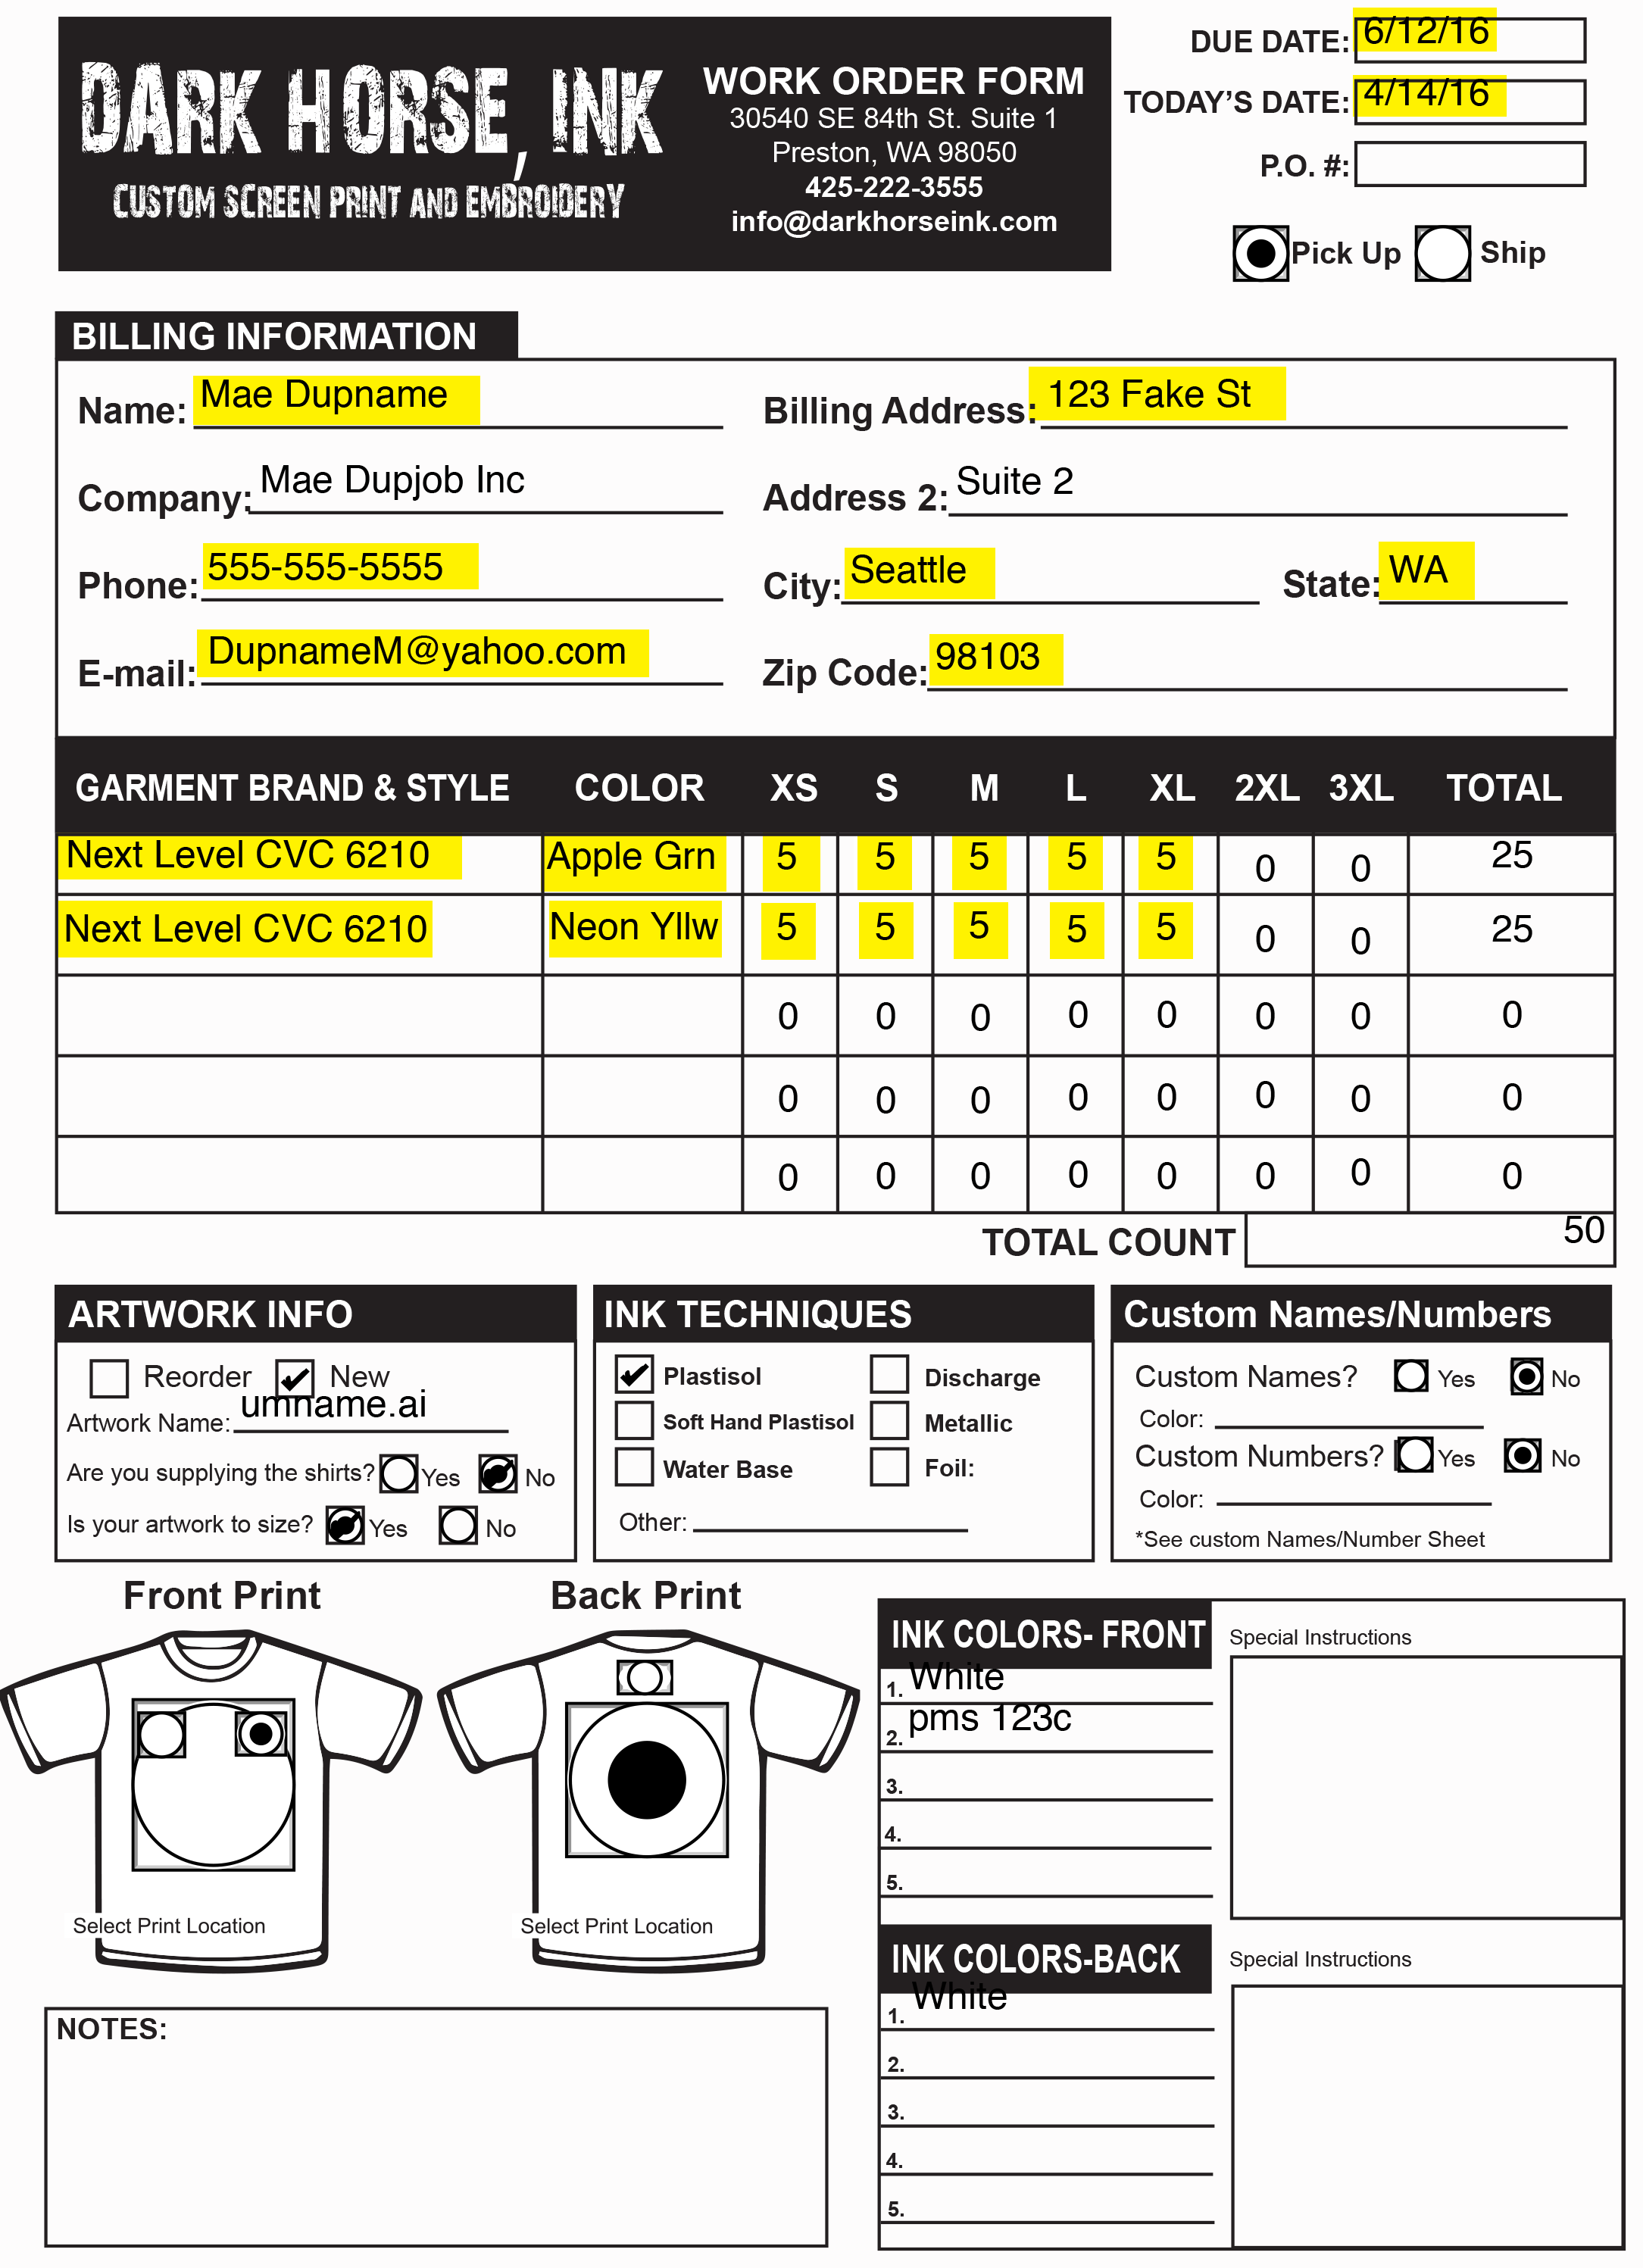 Work Order Form sample.png